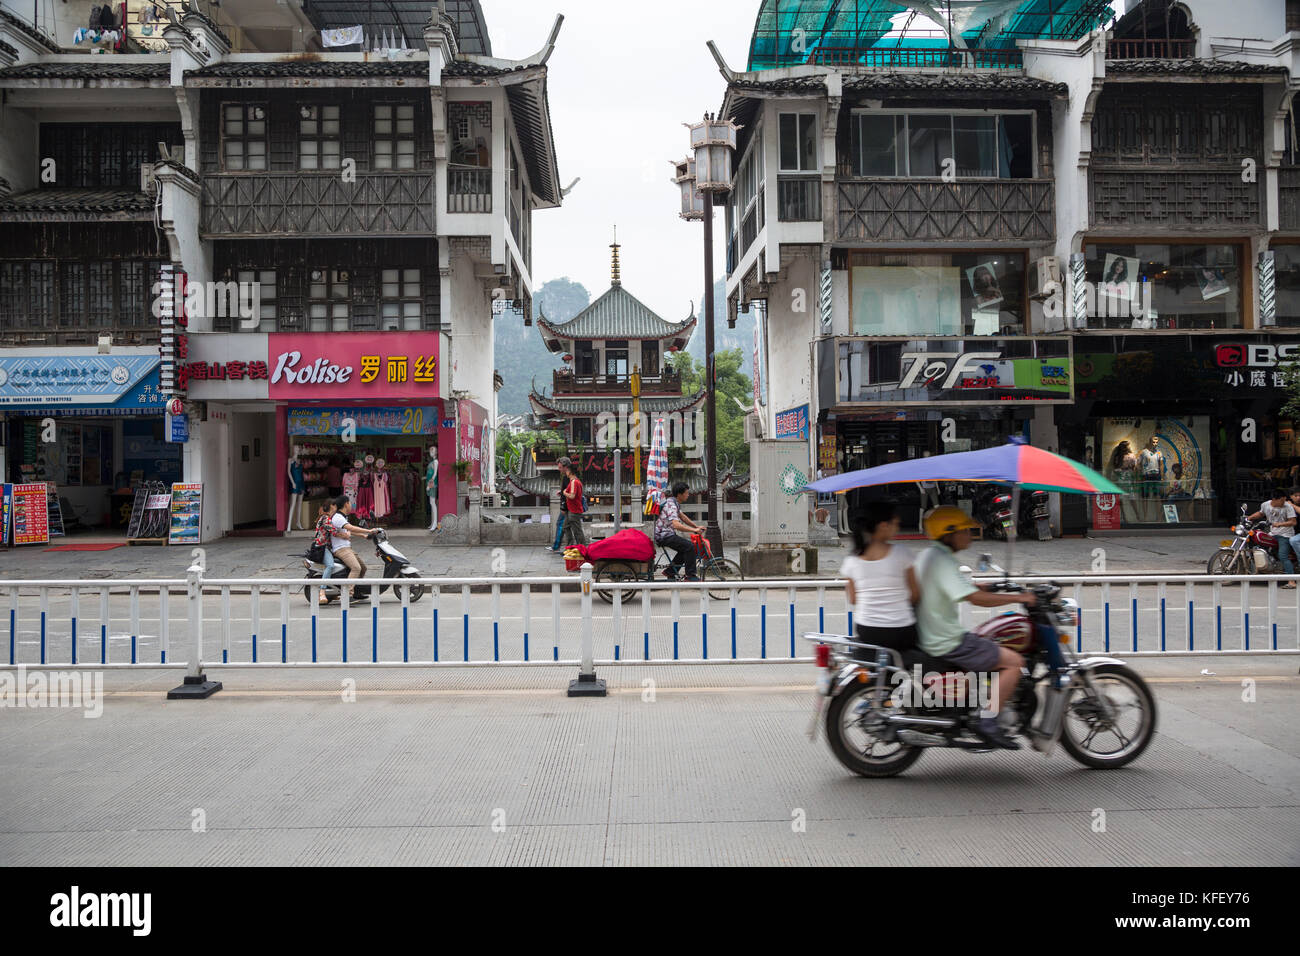 A central street in Yangshuo сity in Guangxi Zhuang Autonomous Region of China Stock Photo